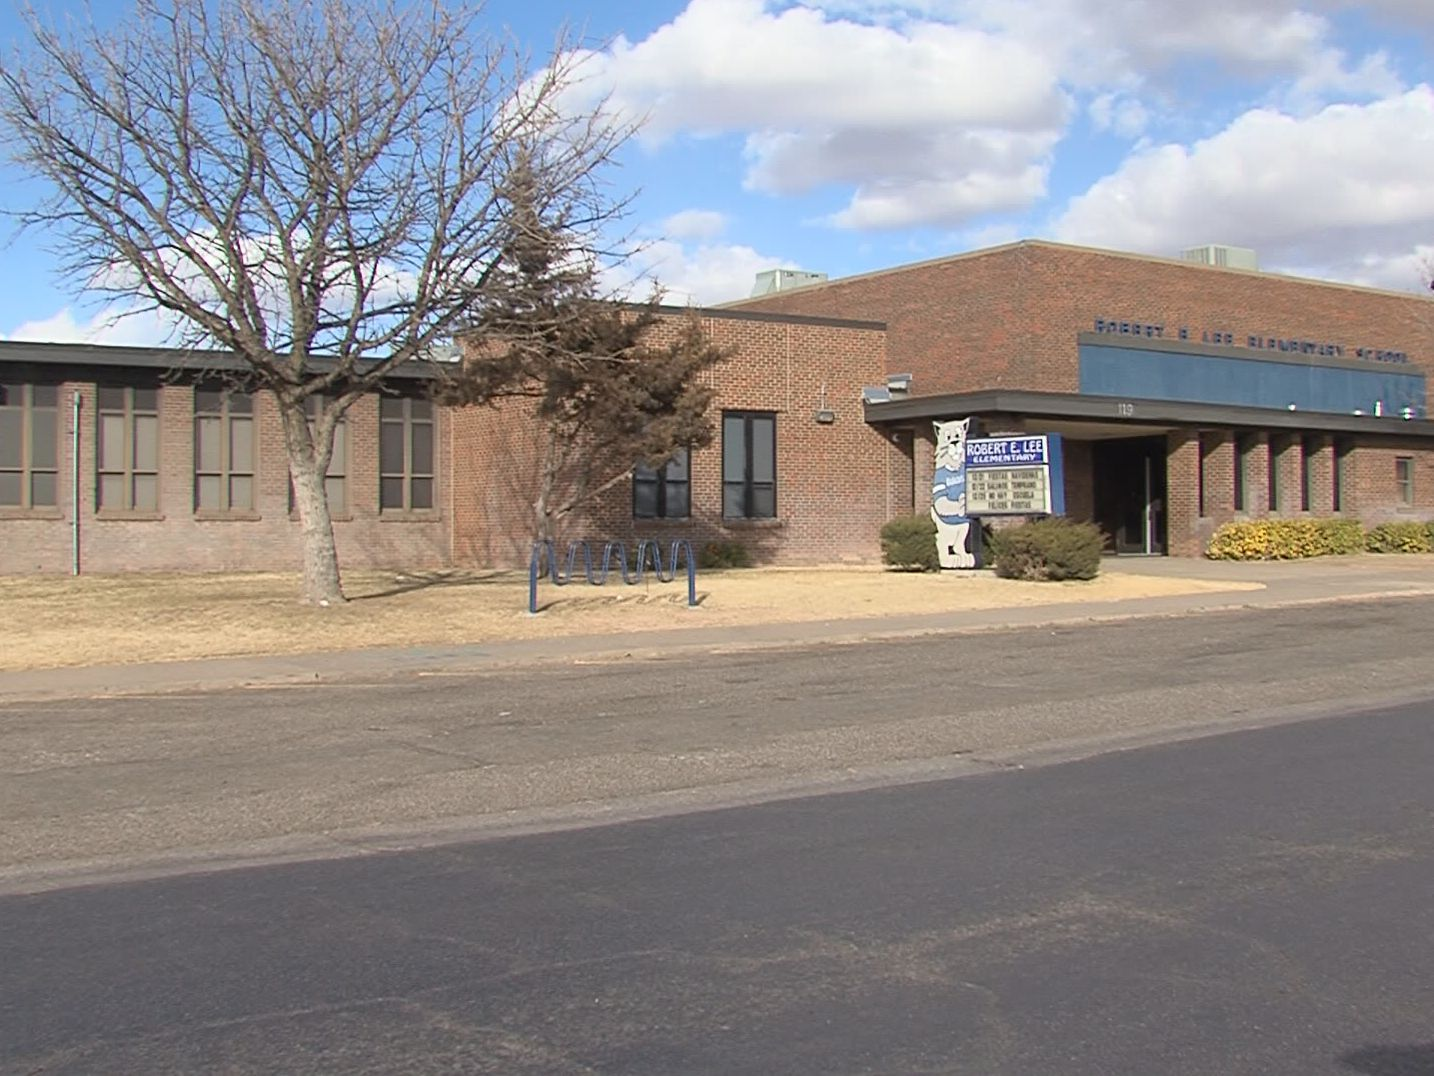 Amarillo Education Association and NAACP support changing name of Lee Elementary